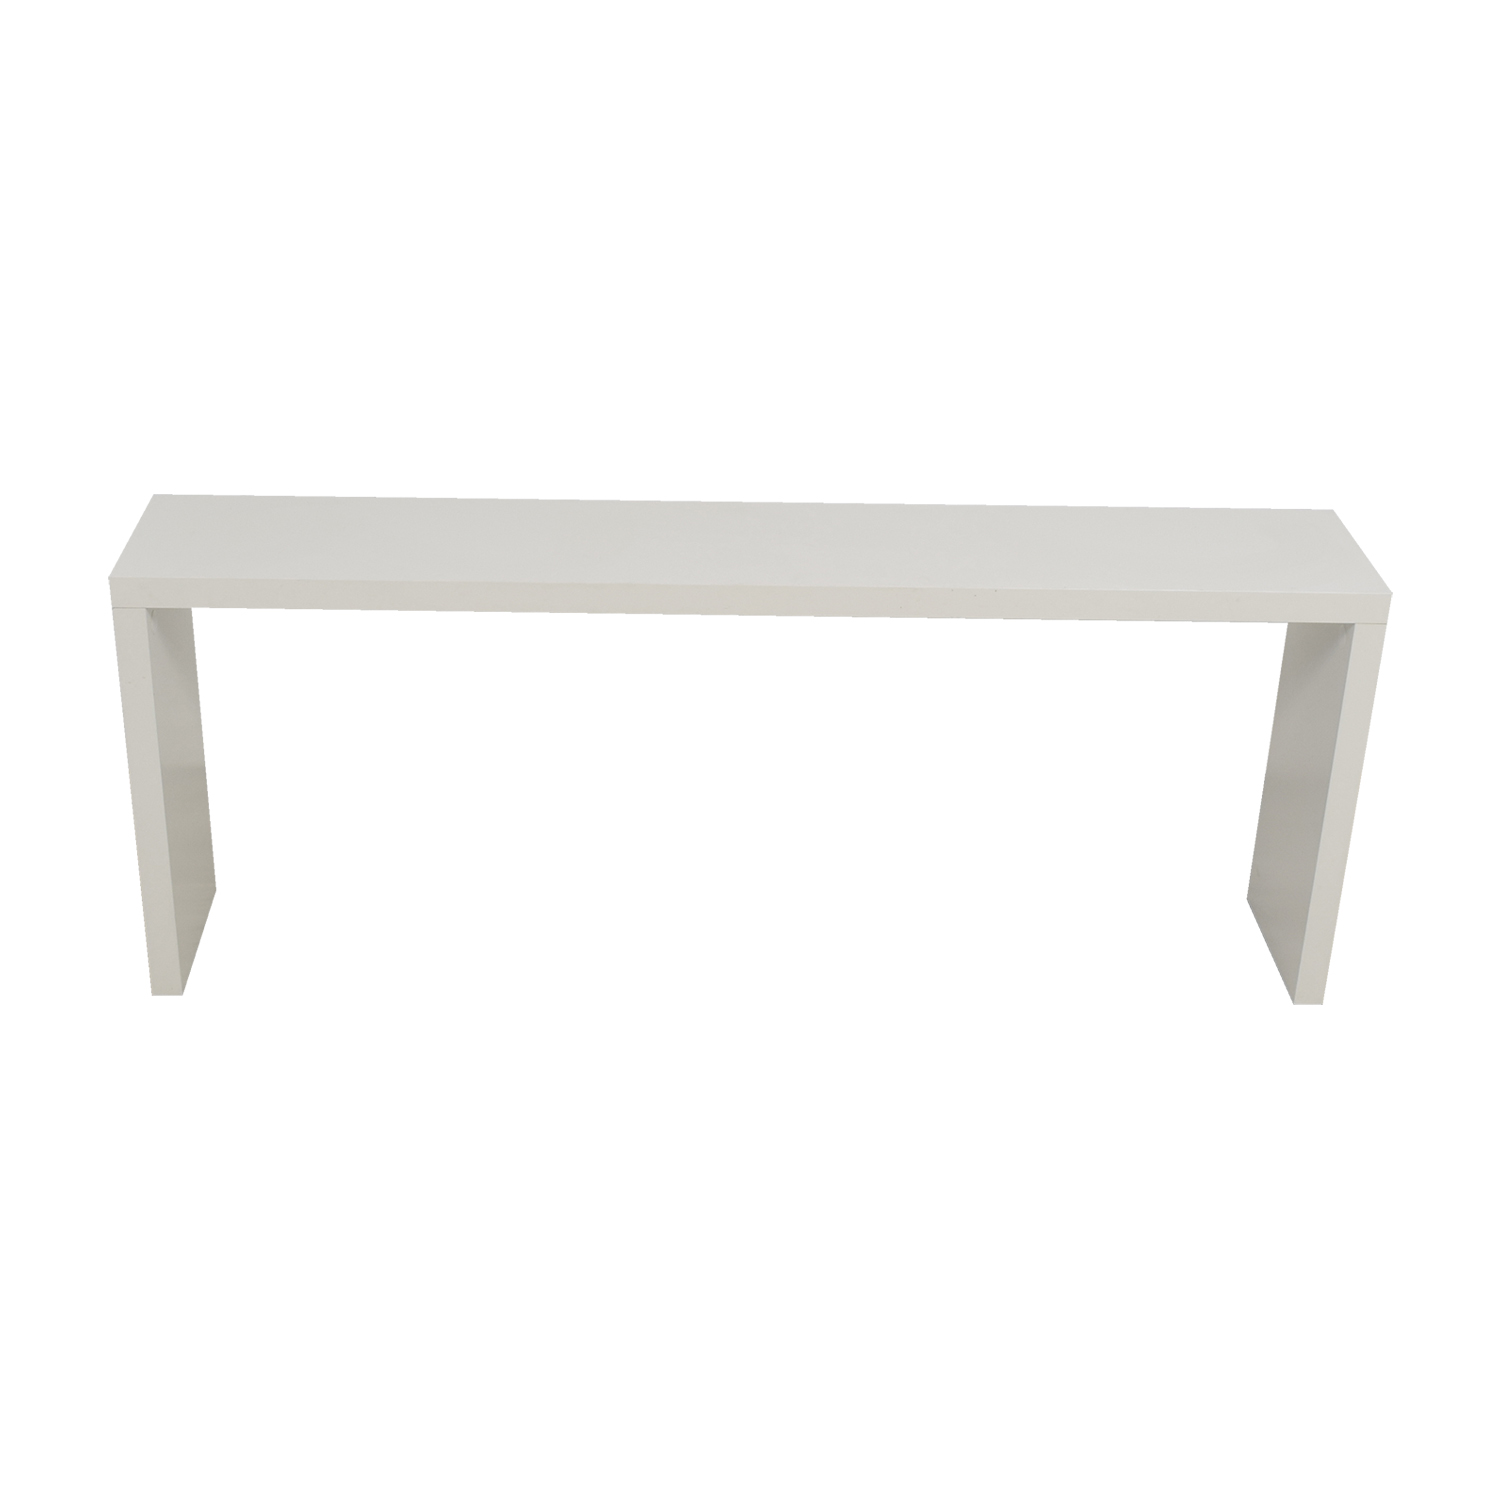 Fells Fells White Narrow Console Table nyc